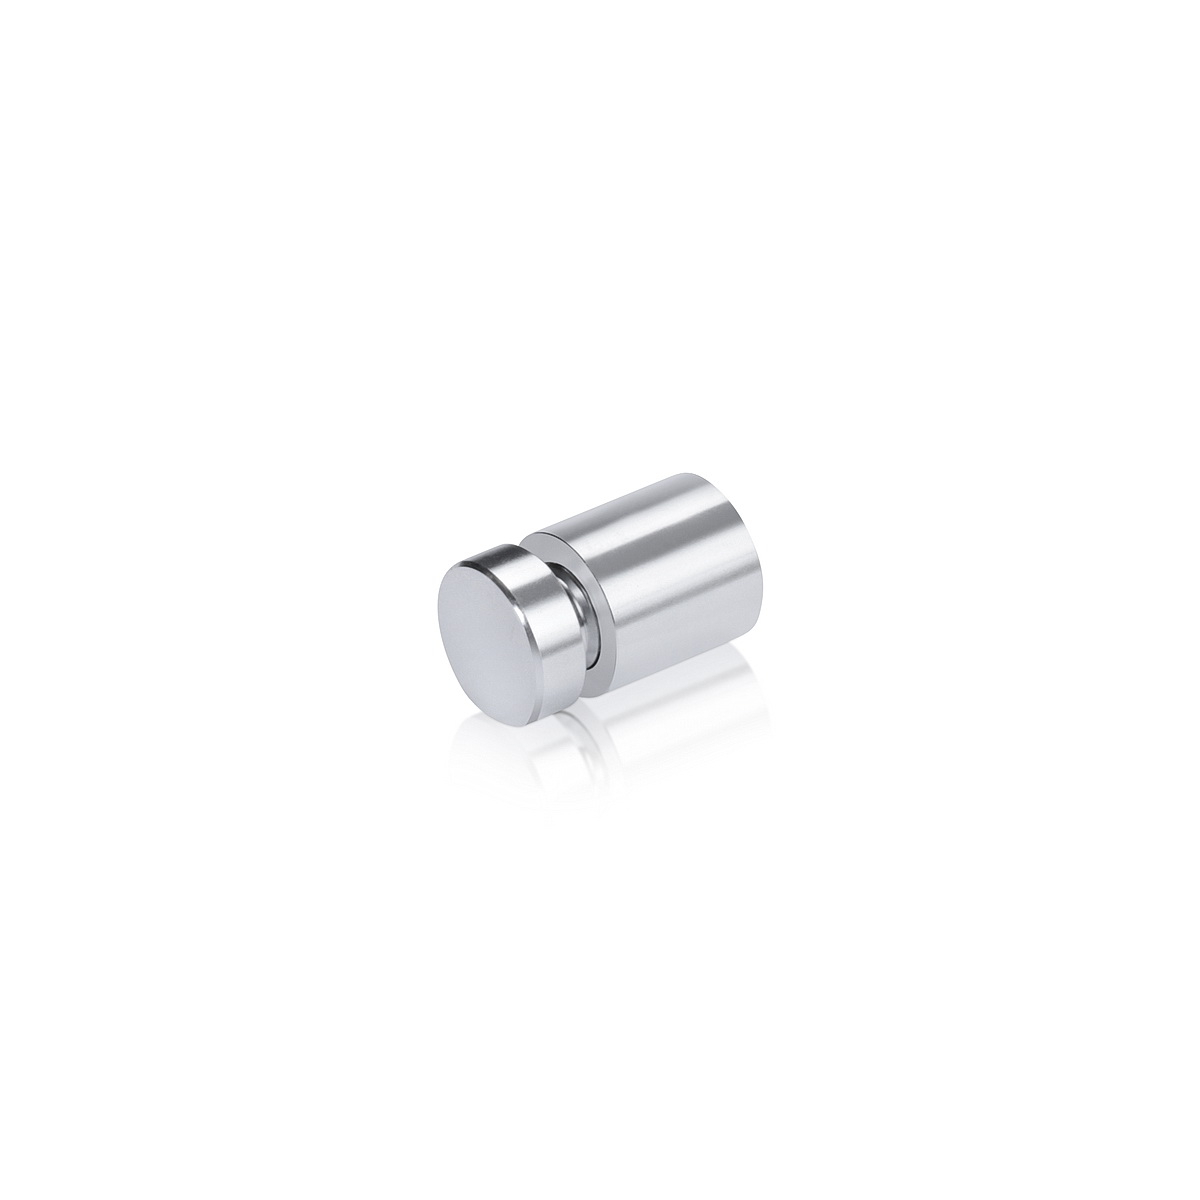 1/2'' Diameter X 1/2'' Barrel Length, Affordable Aluminum Standoffs, Silver Anodized Finish Easy Fasten Standoff (For Inside / Outside use)